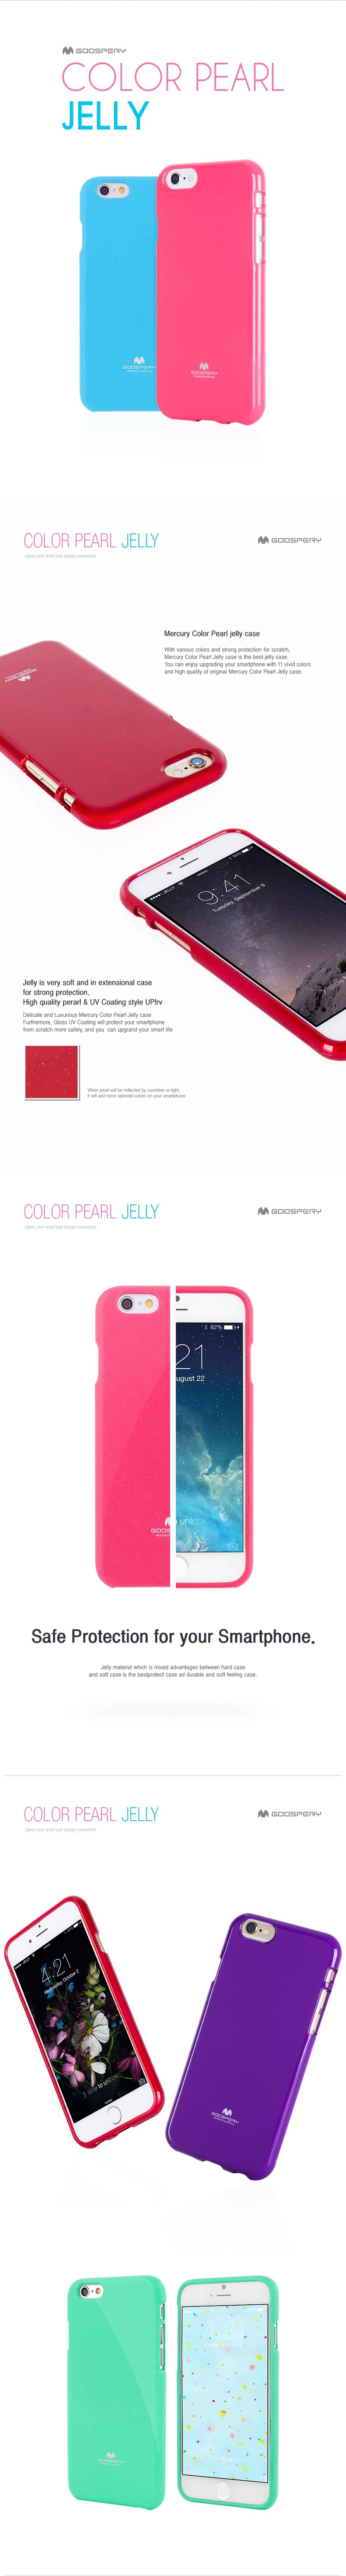 Buy Goospery Deals For Only S199 Instead Of S0 Iphone 6 6s Soft Feeling Jelly Case Black Material Which Is Mixed Advantages Between Hard And The Best Protect Durable Casing